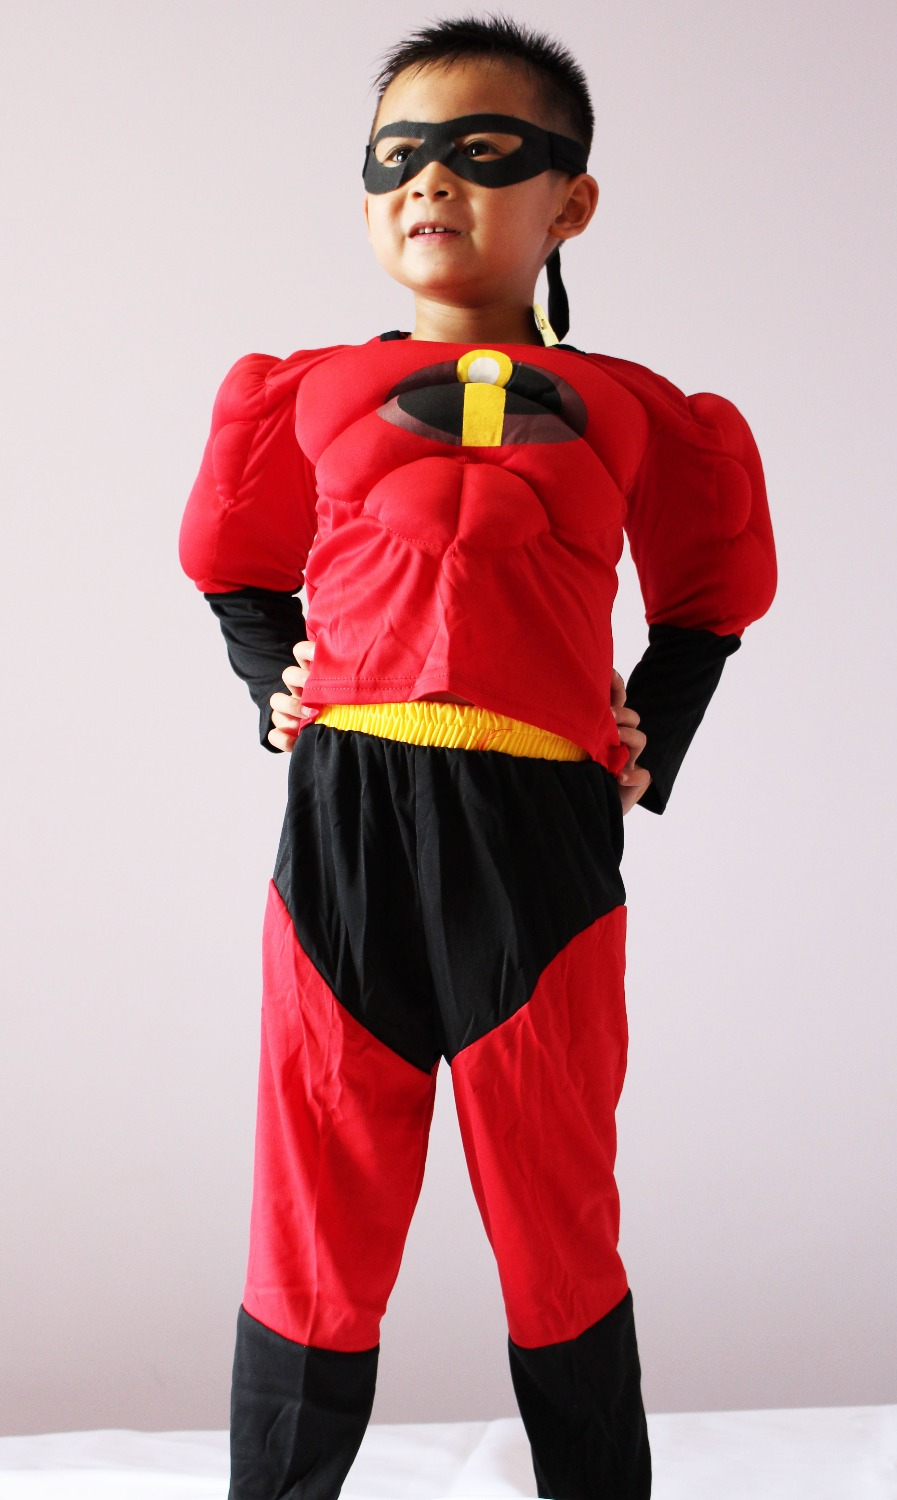 3-7 år Party Kids Comic Marvel The incredibles Bob Muscle Halloween Kostume, dreng roll spille tøj 16818 #